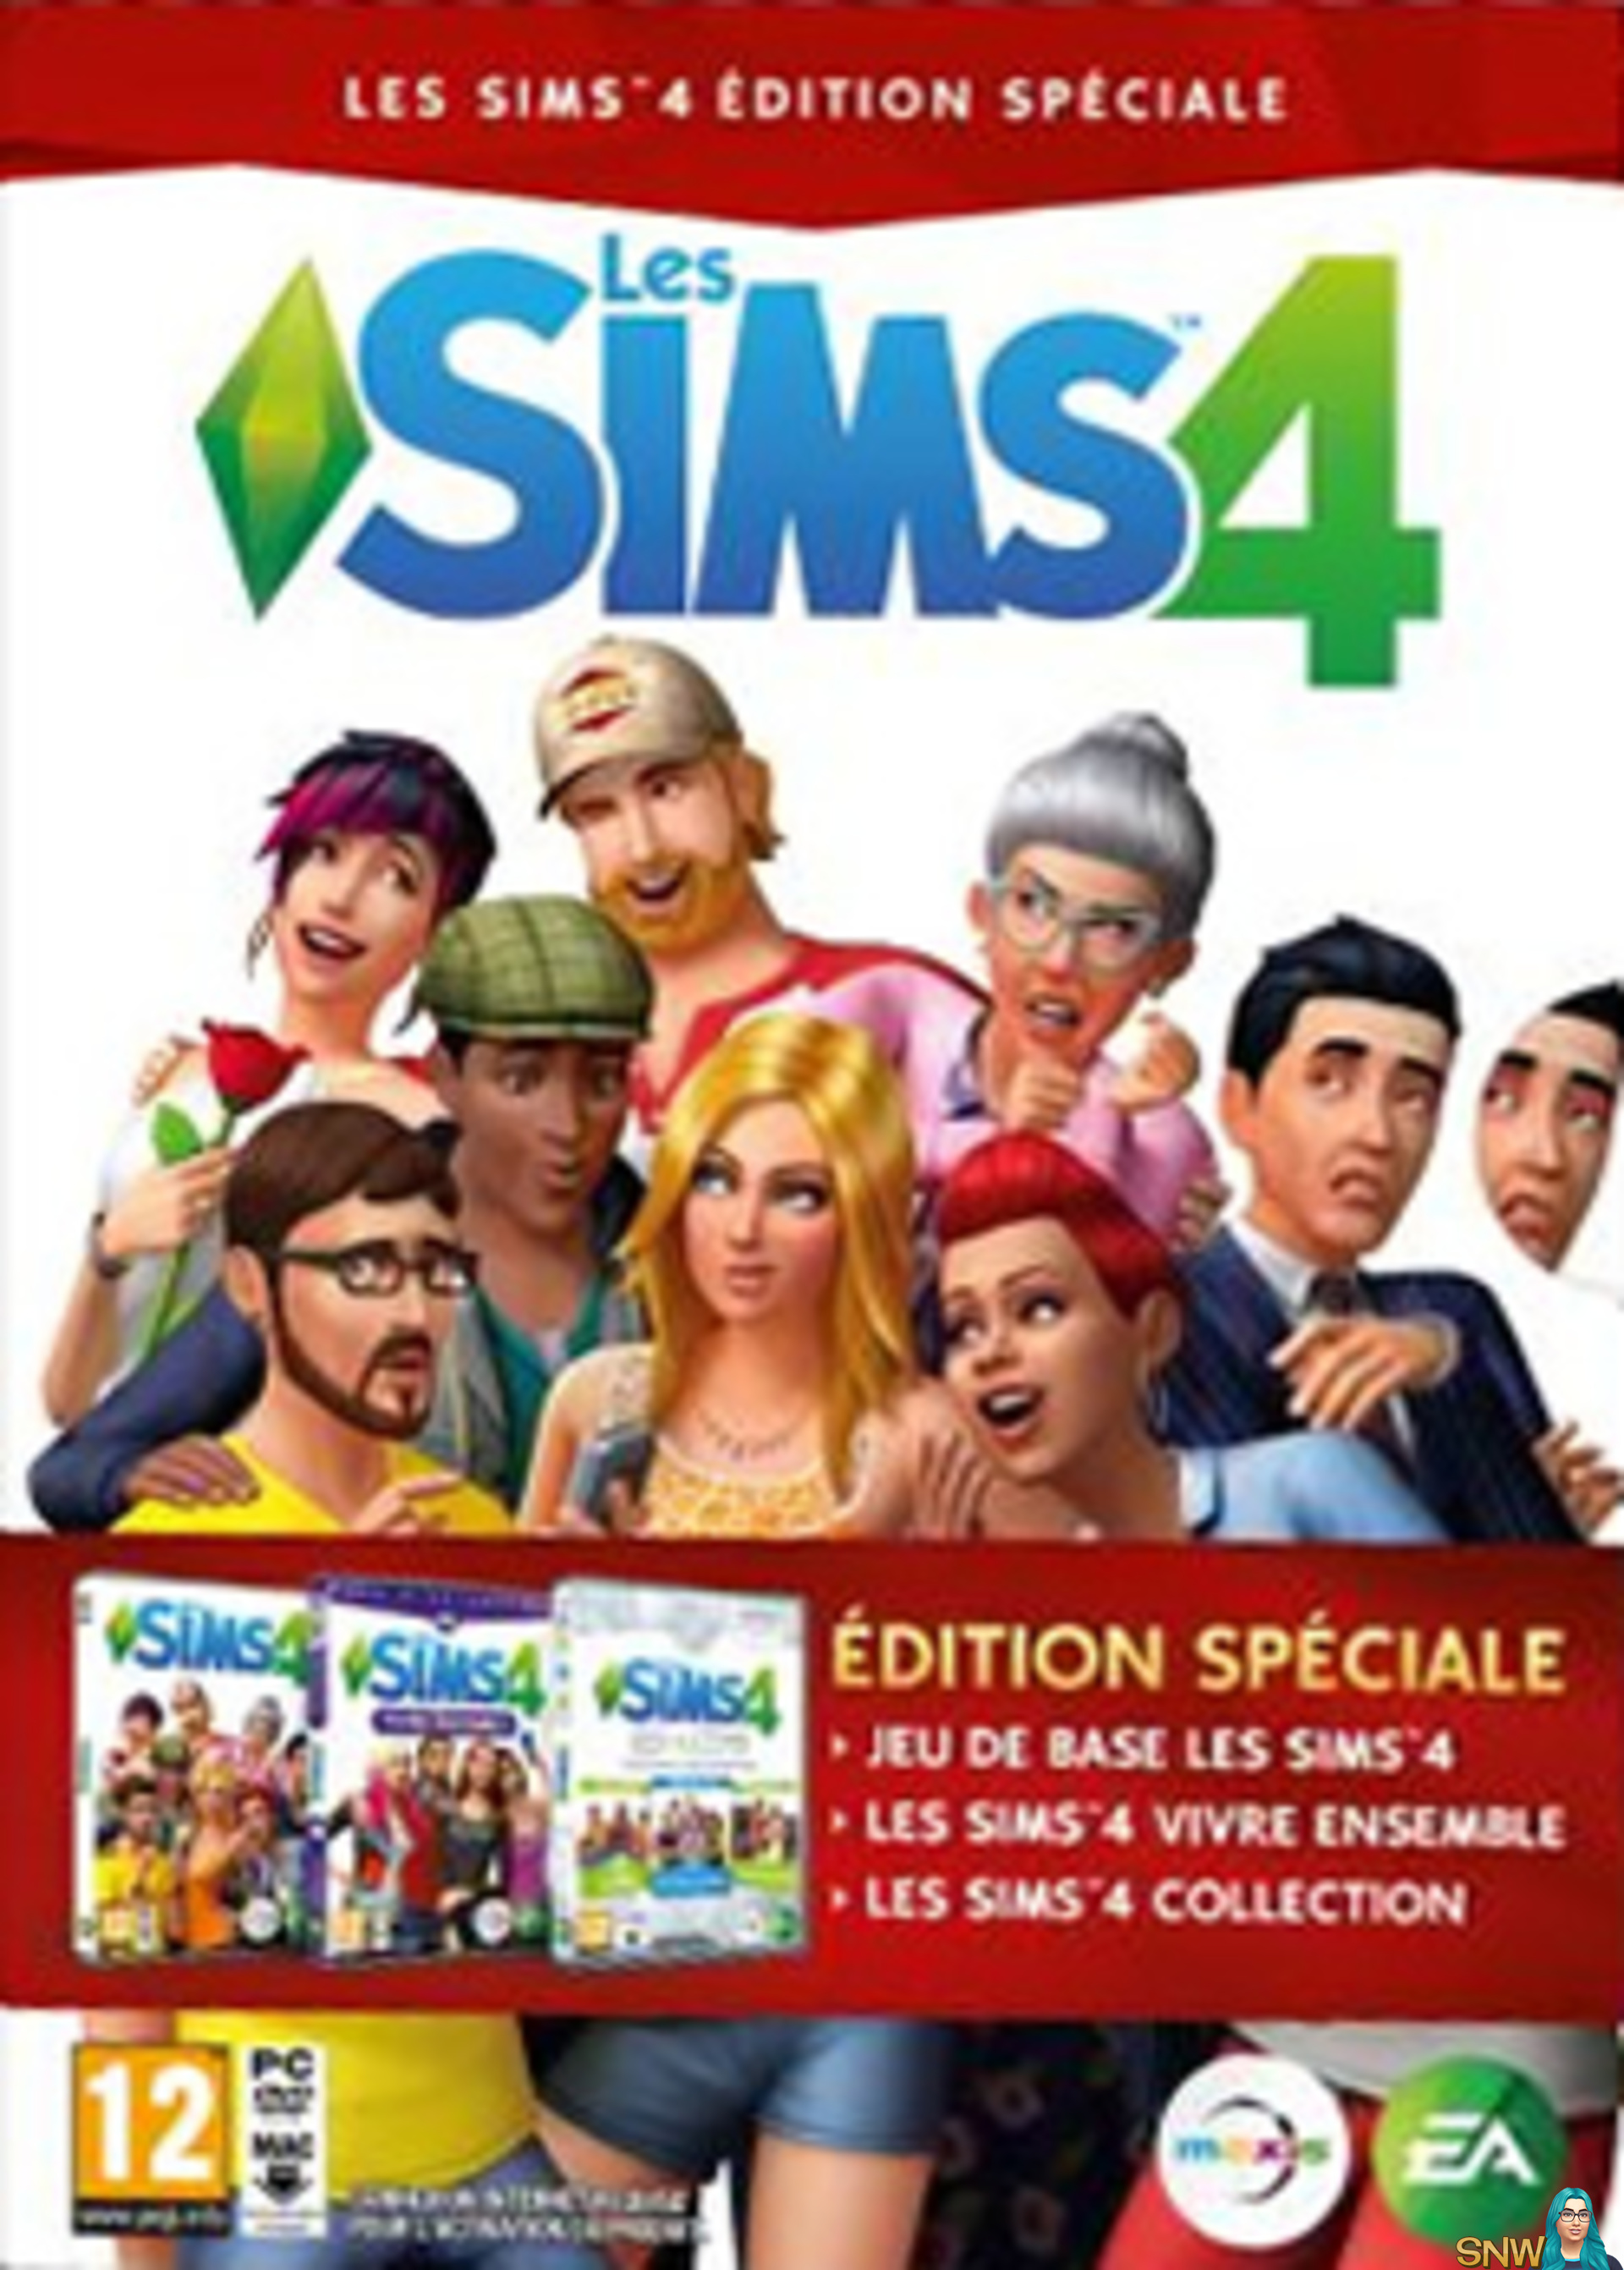 The Sims 4 Special Edition 2016 Snw Simsnetwork Com